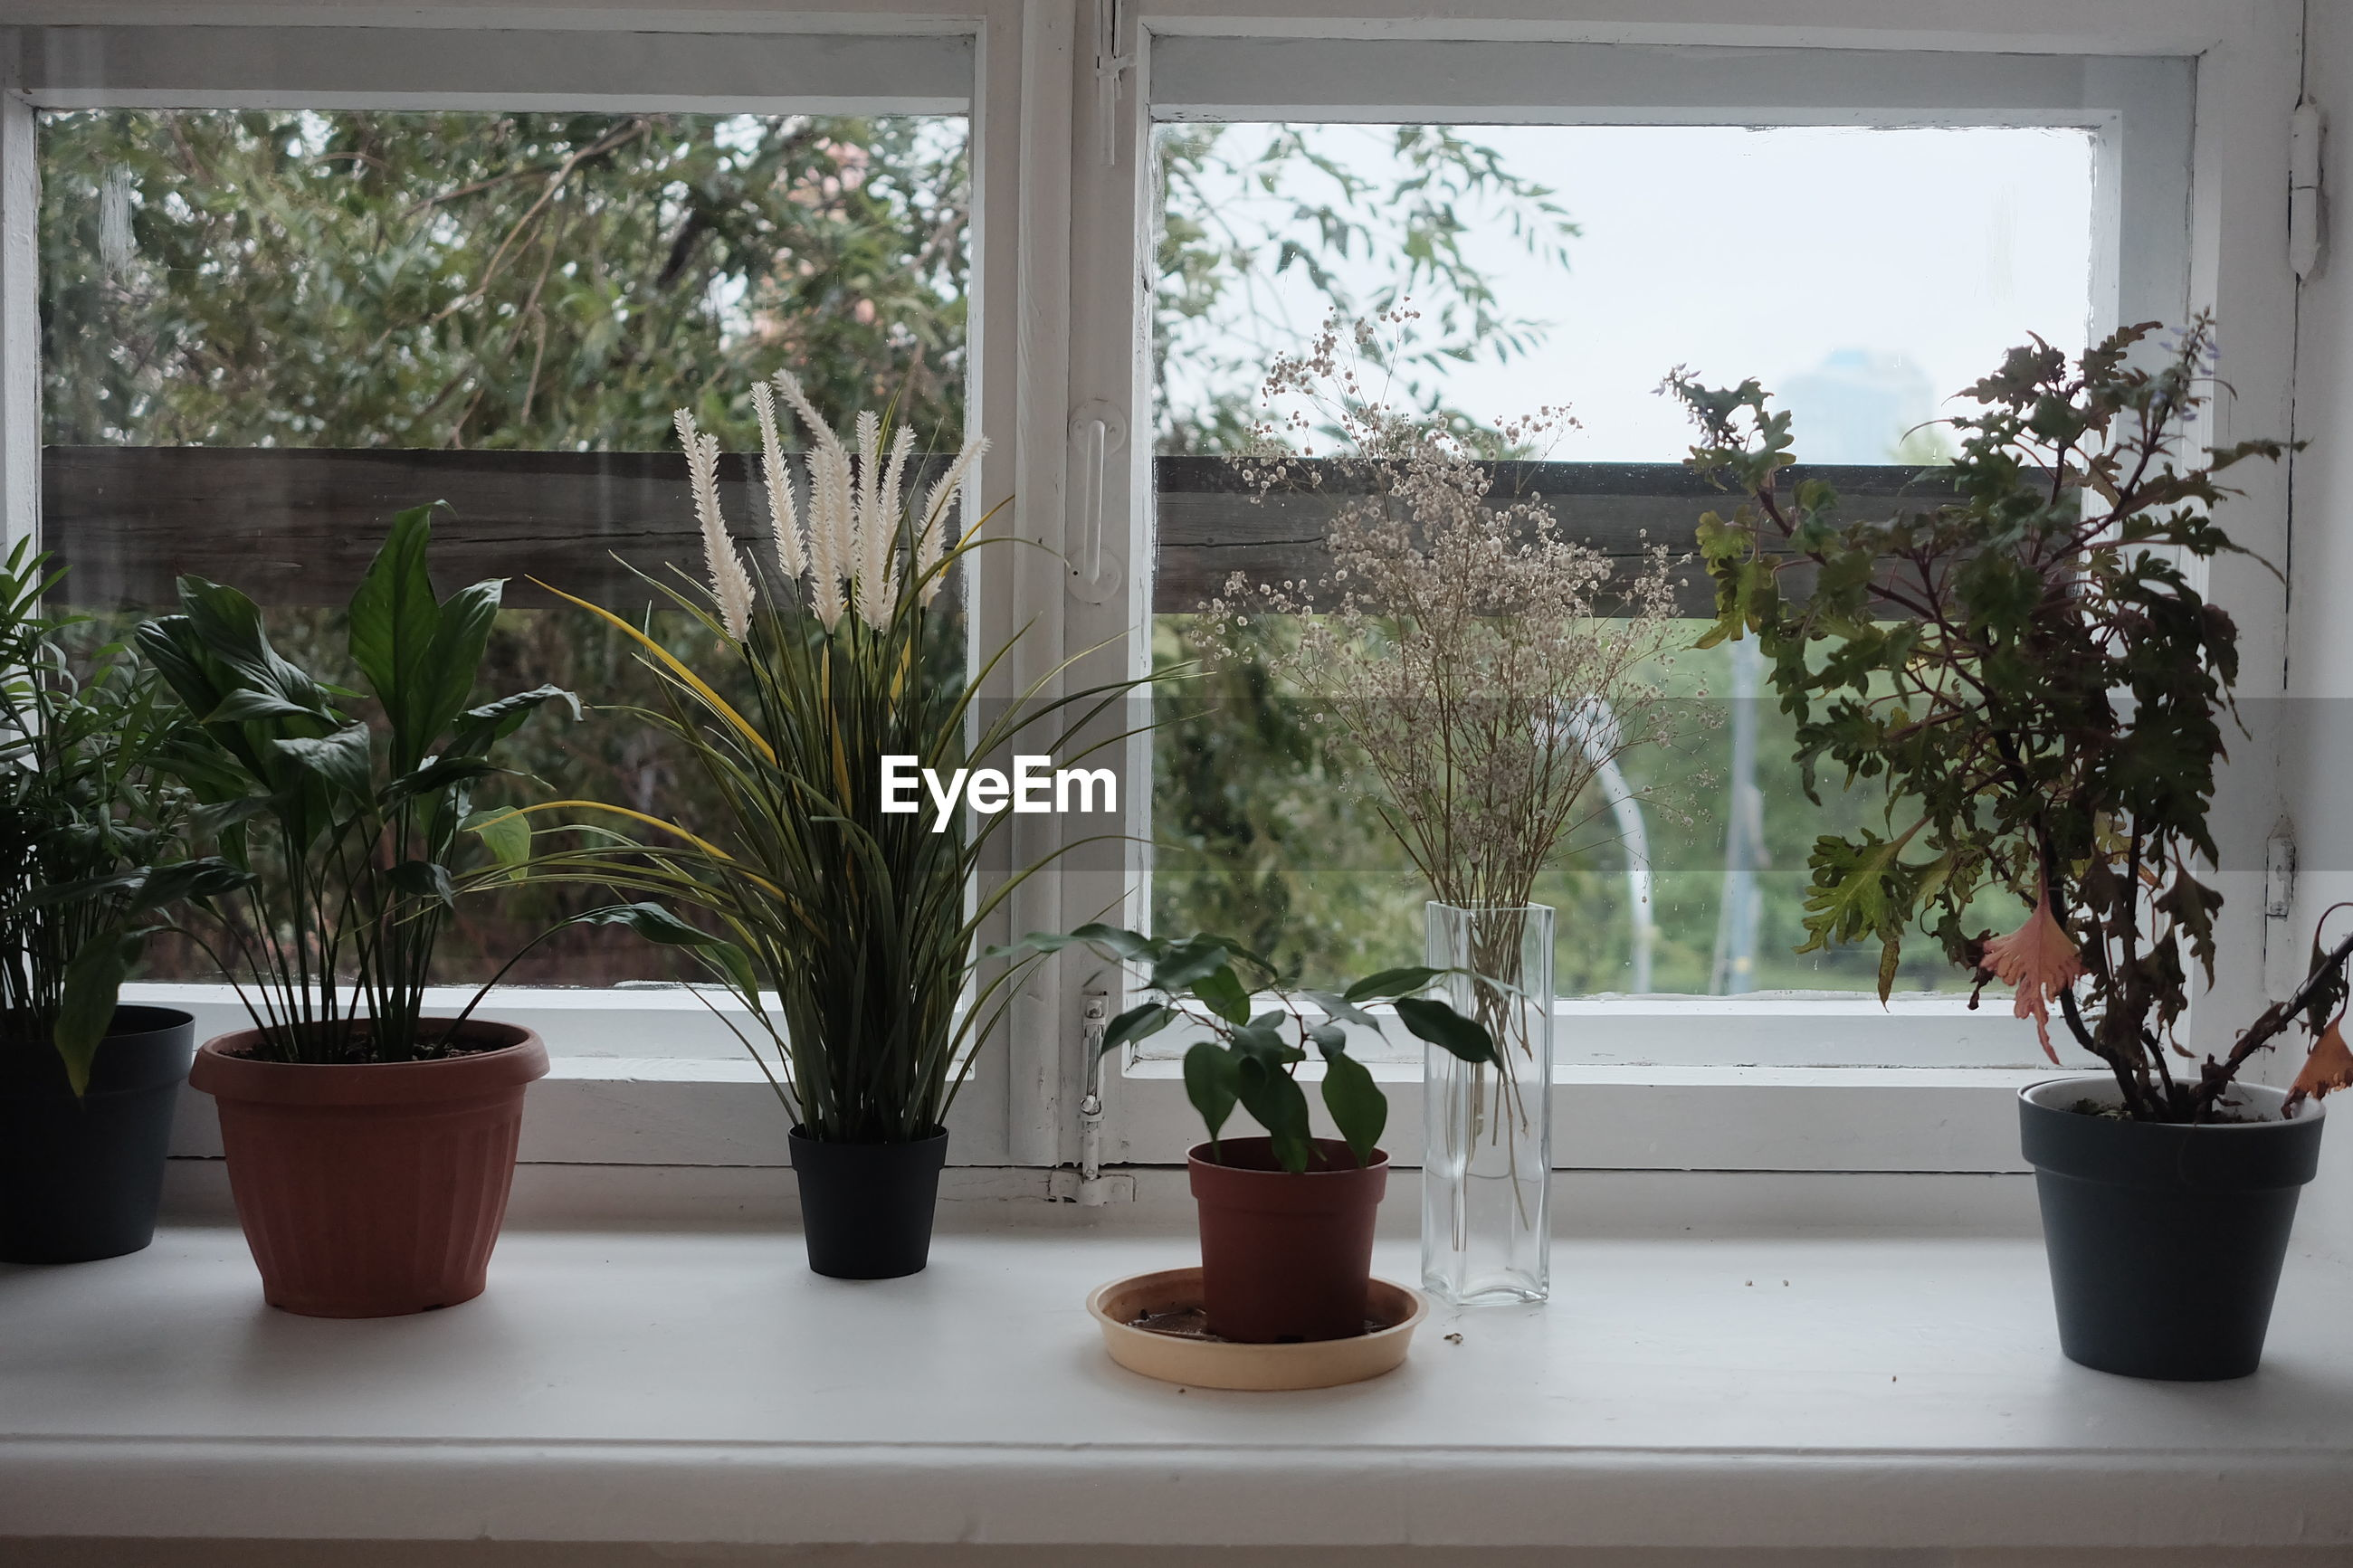 POTTED PLANTS ON WINDOW SILL IN POT